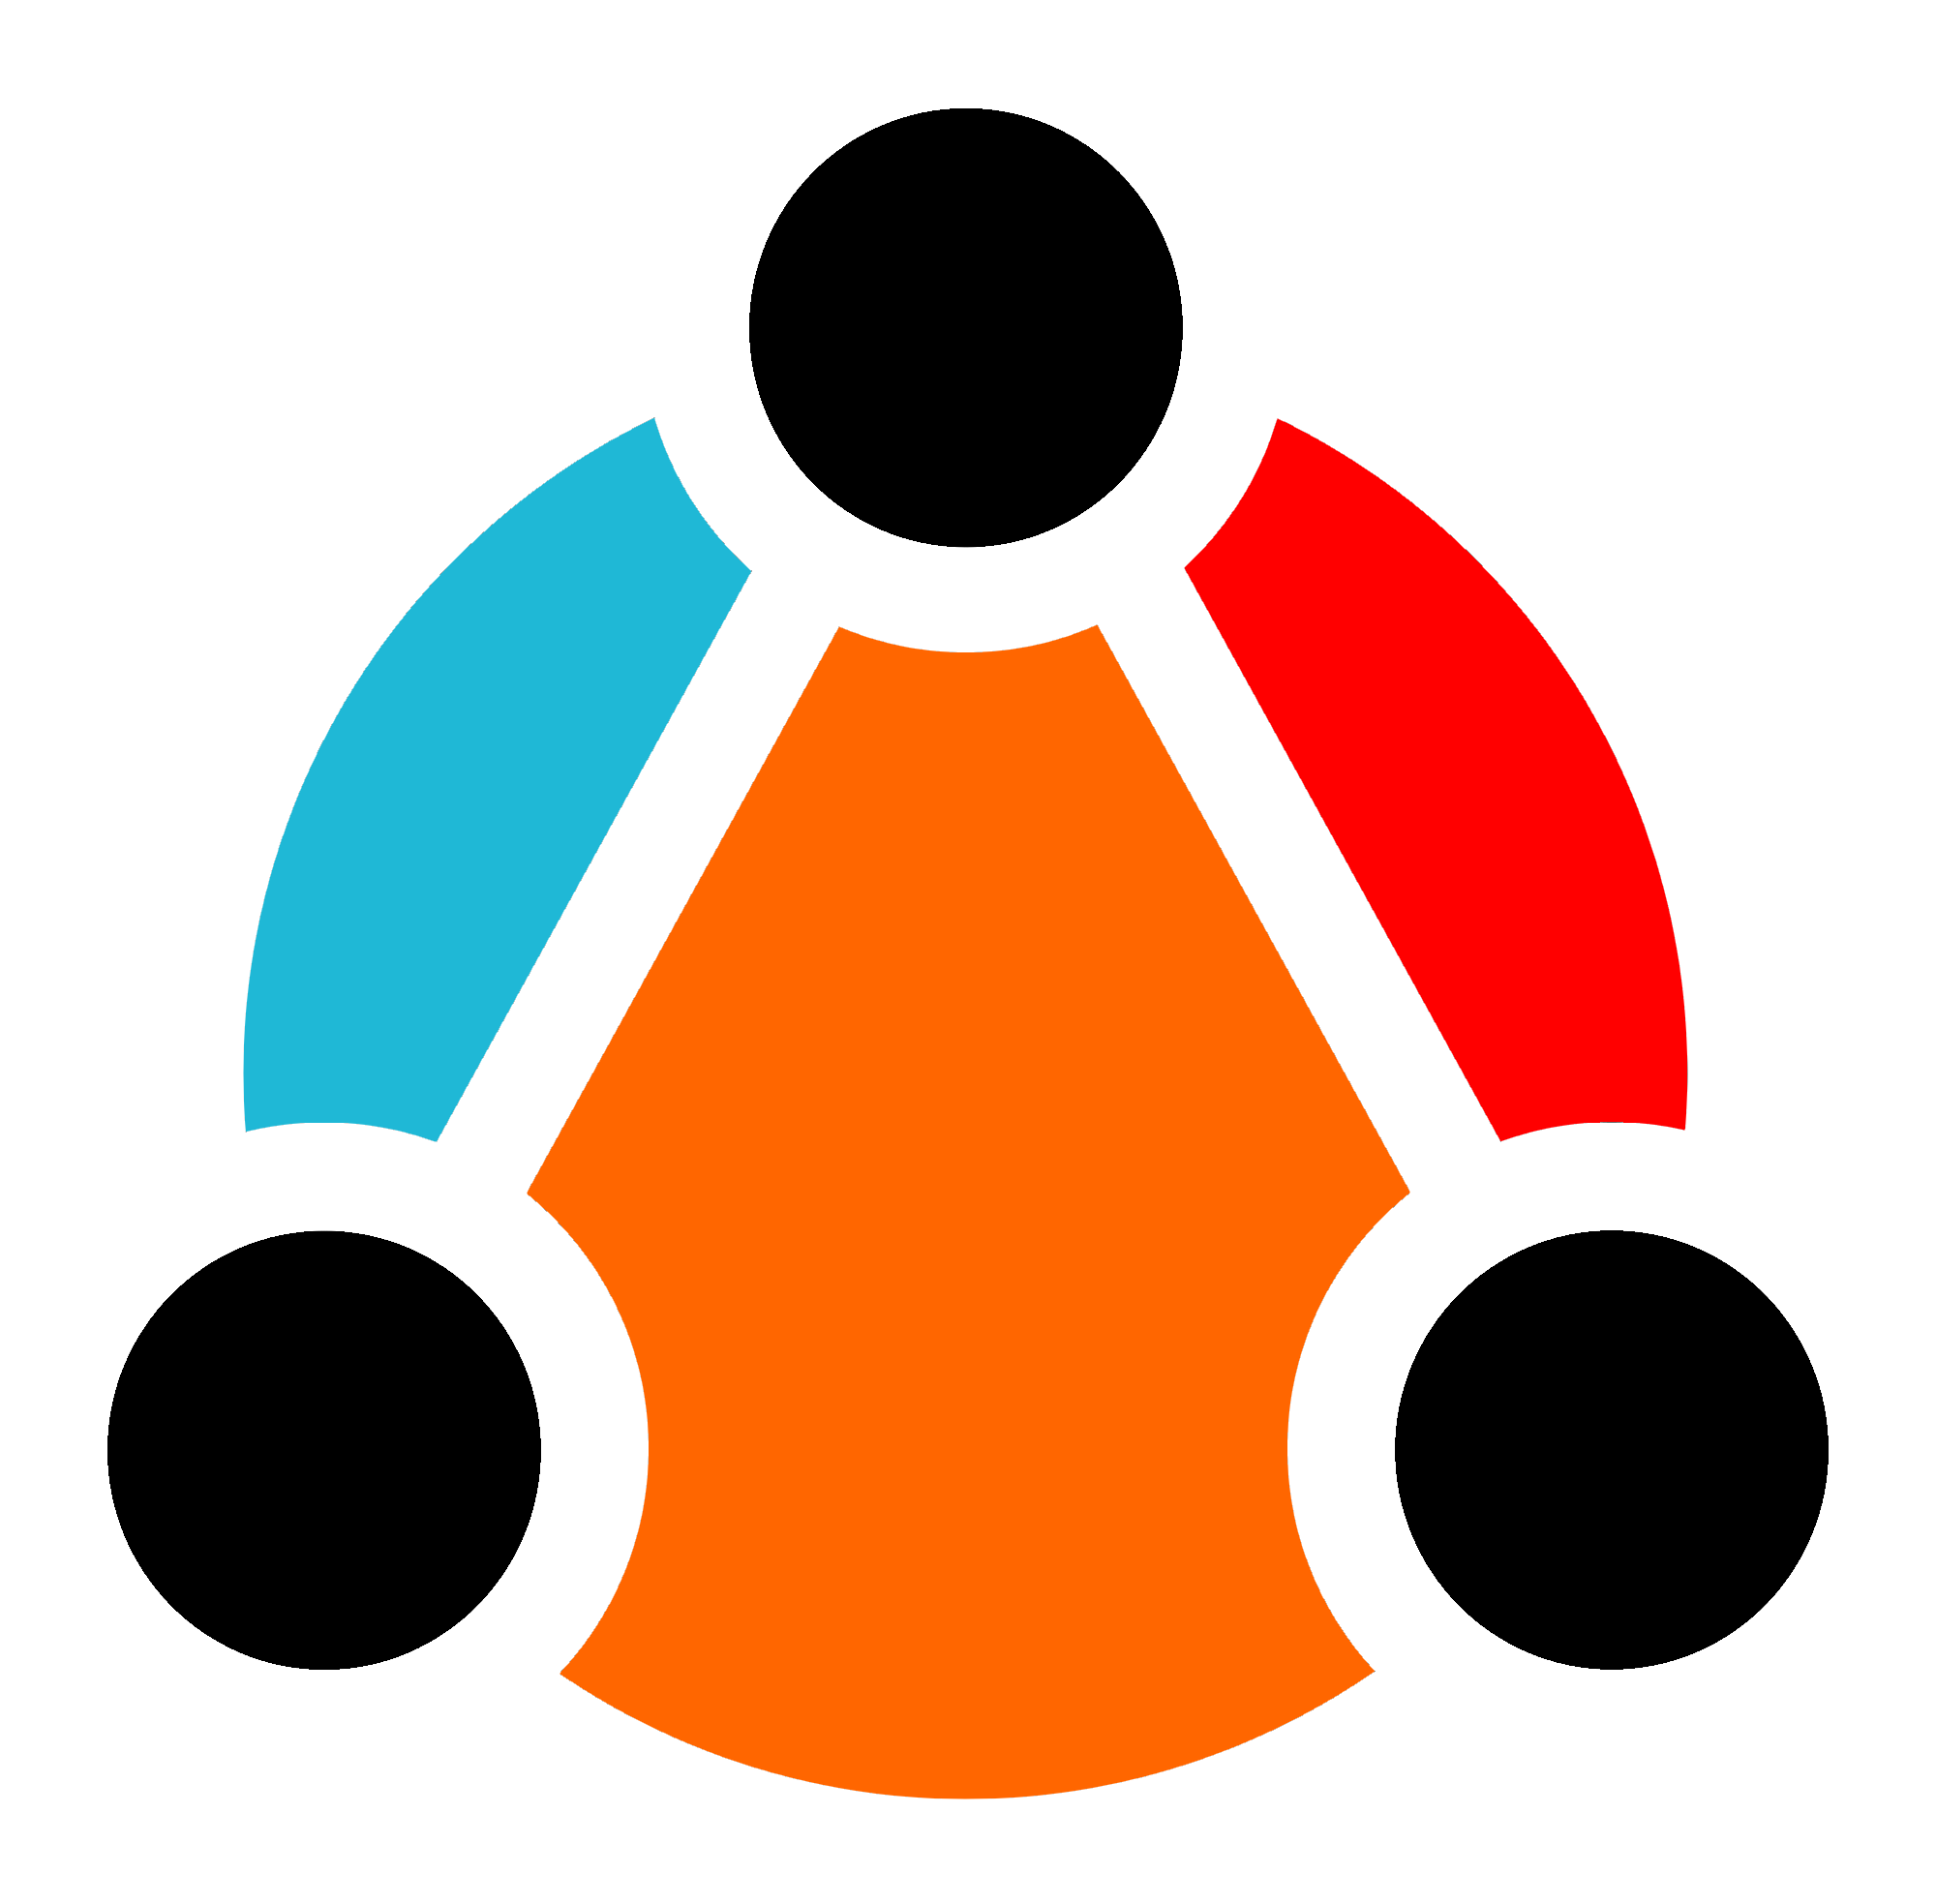 logo_colors_transparent1.png